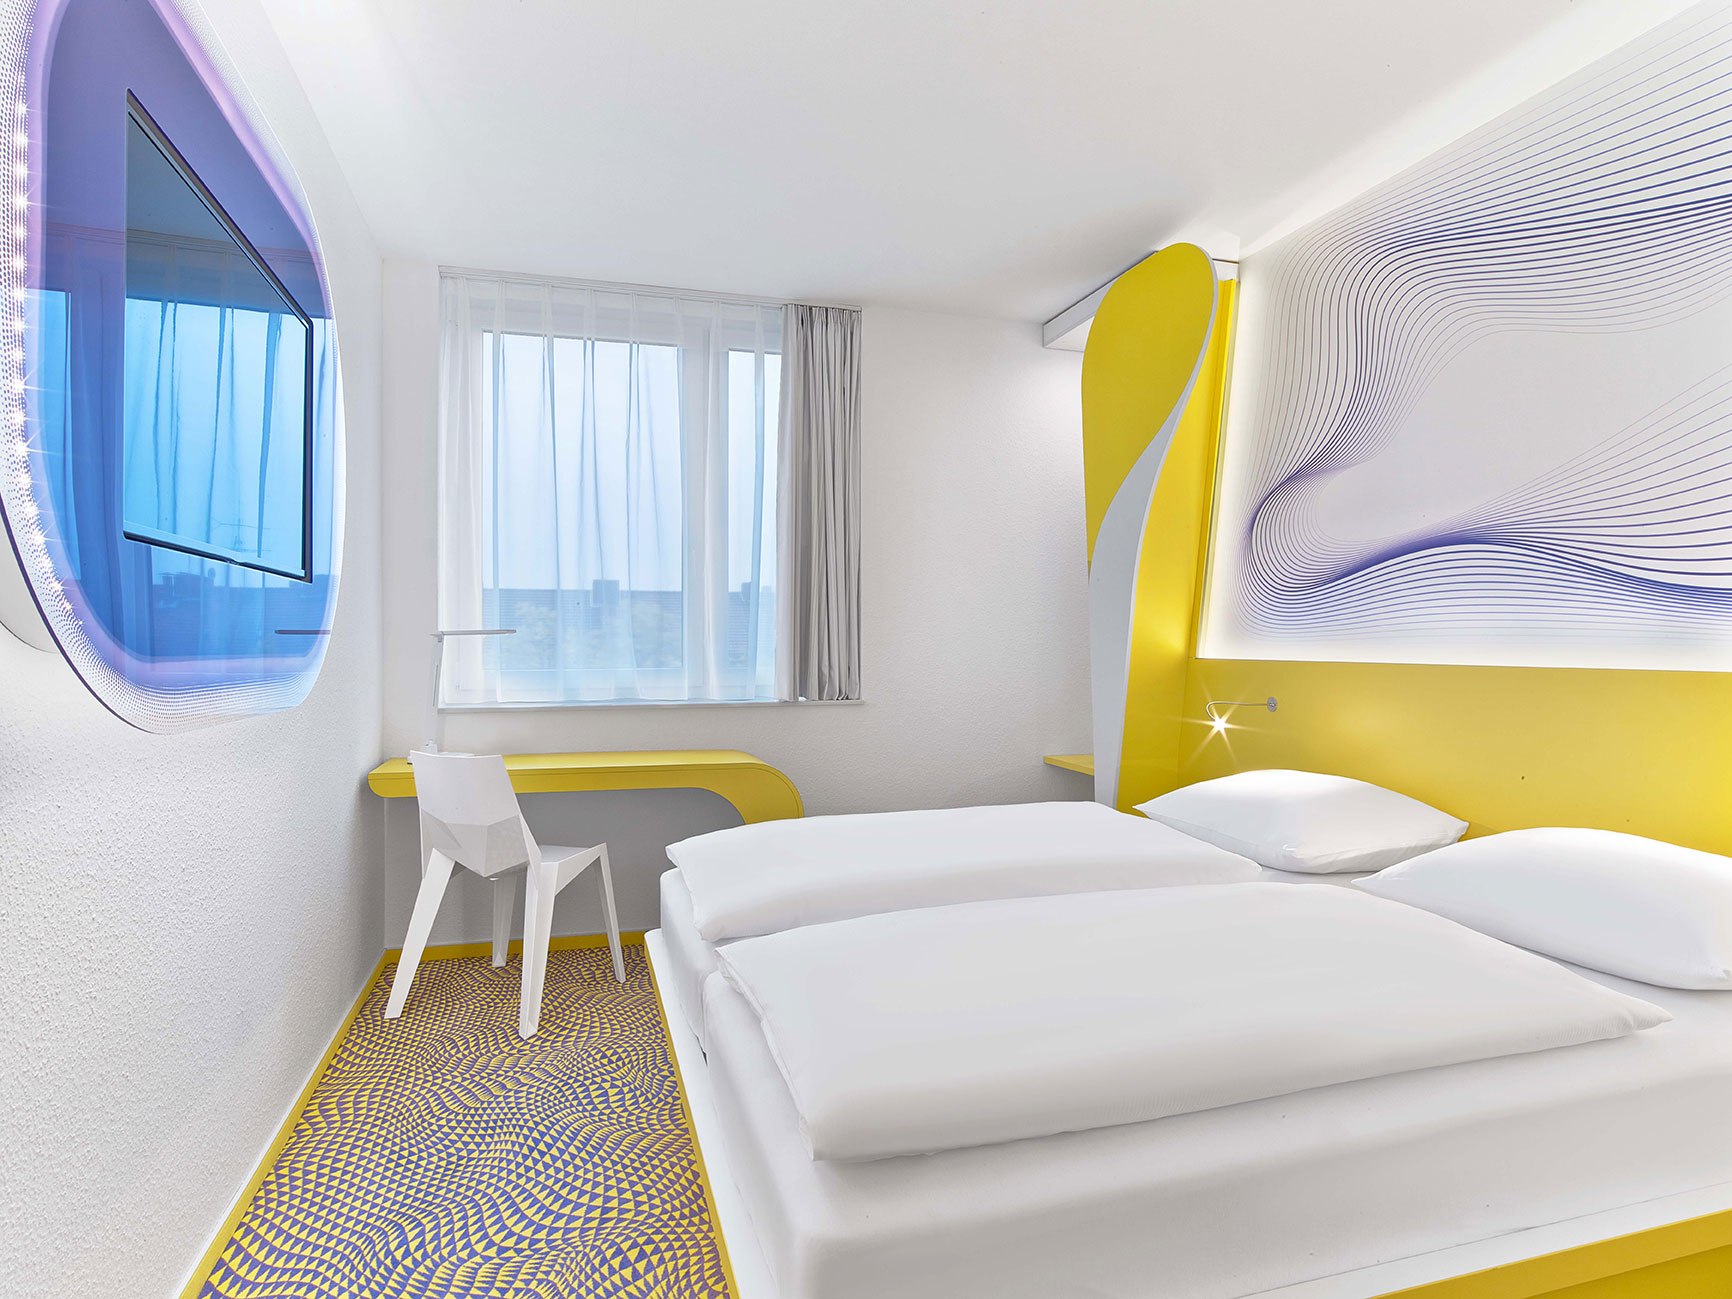 prizeotel Hannover-City Design Room with High-Comfort-Bed 1,80 x 2,00m